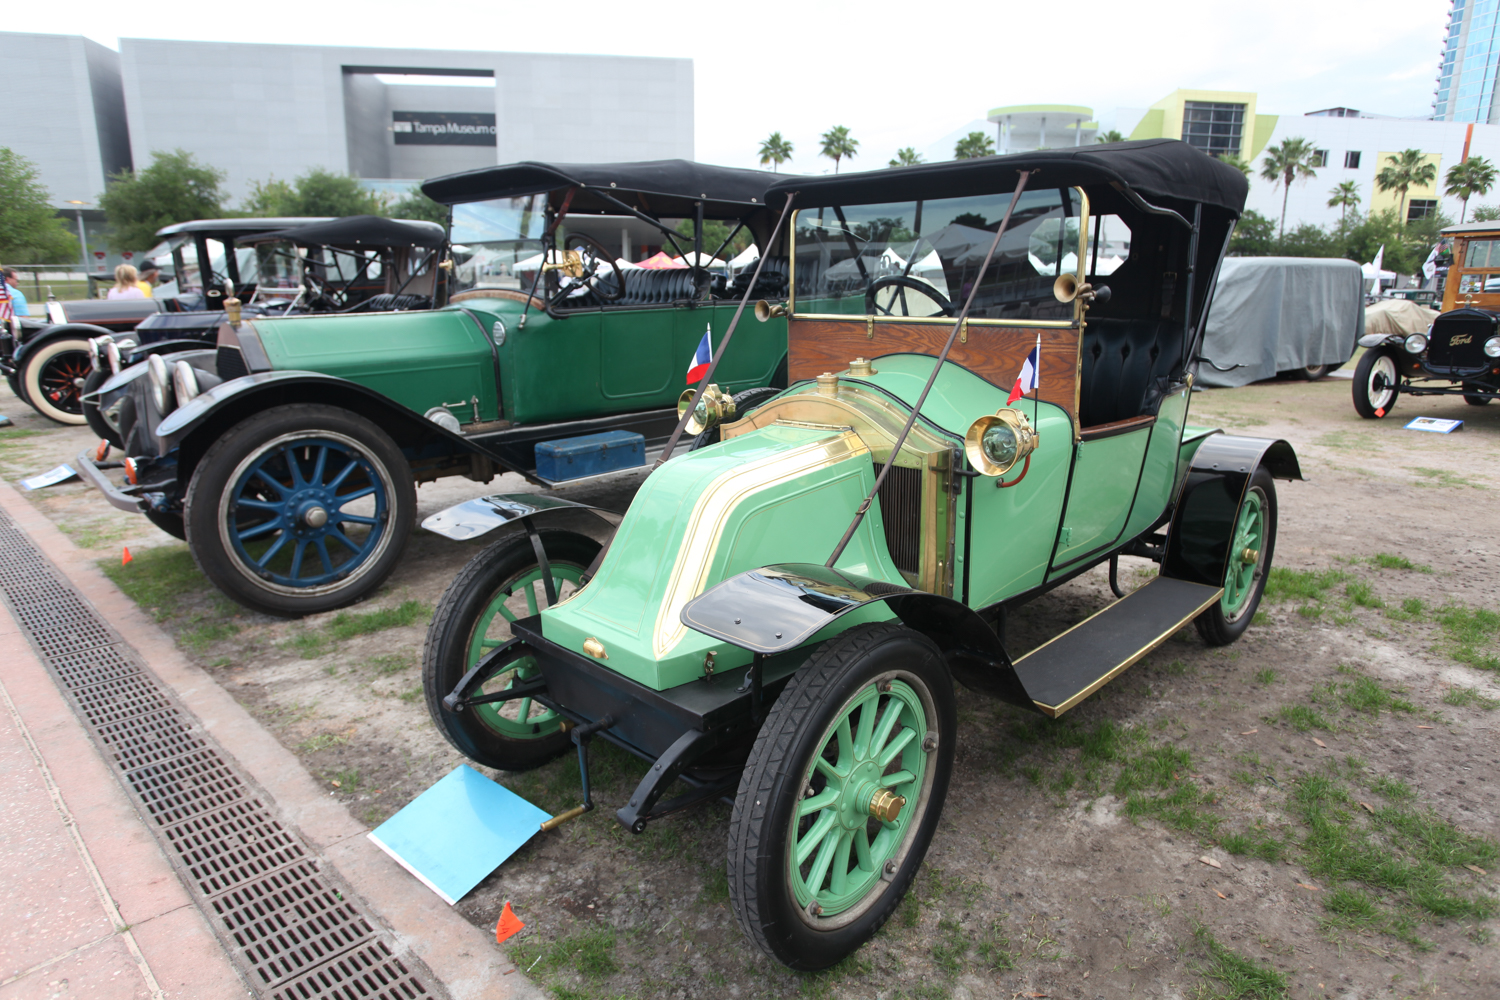 An appropriate car for a Florida concours, this 1913 Renault Model EK reminds me of a Manatee.